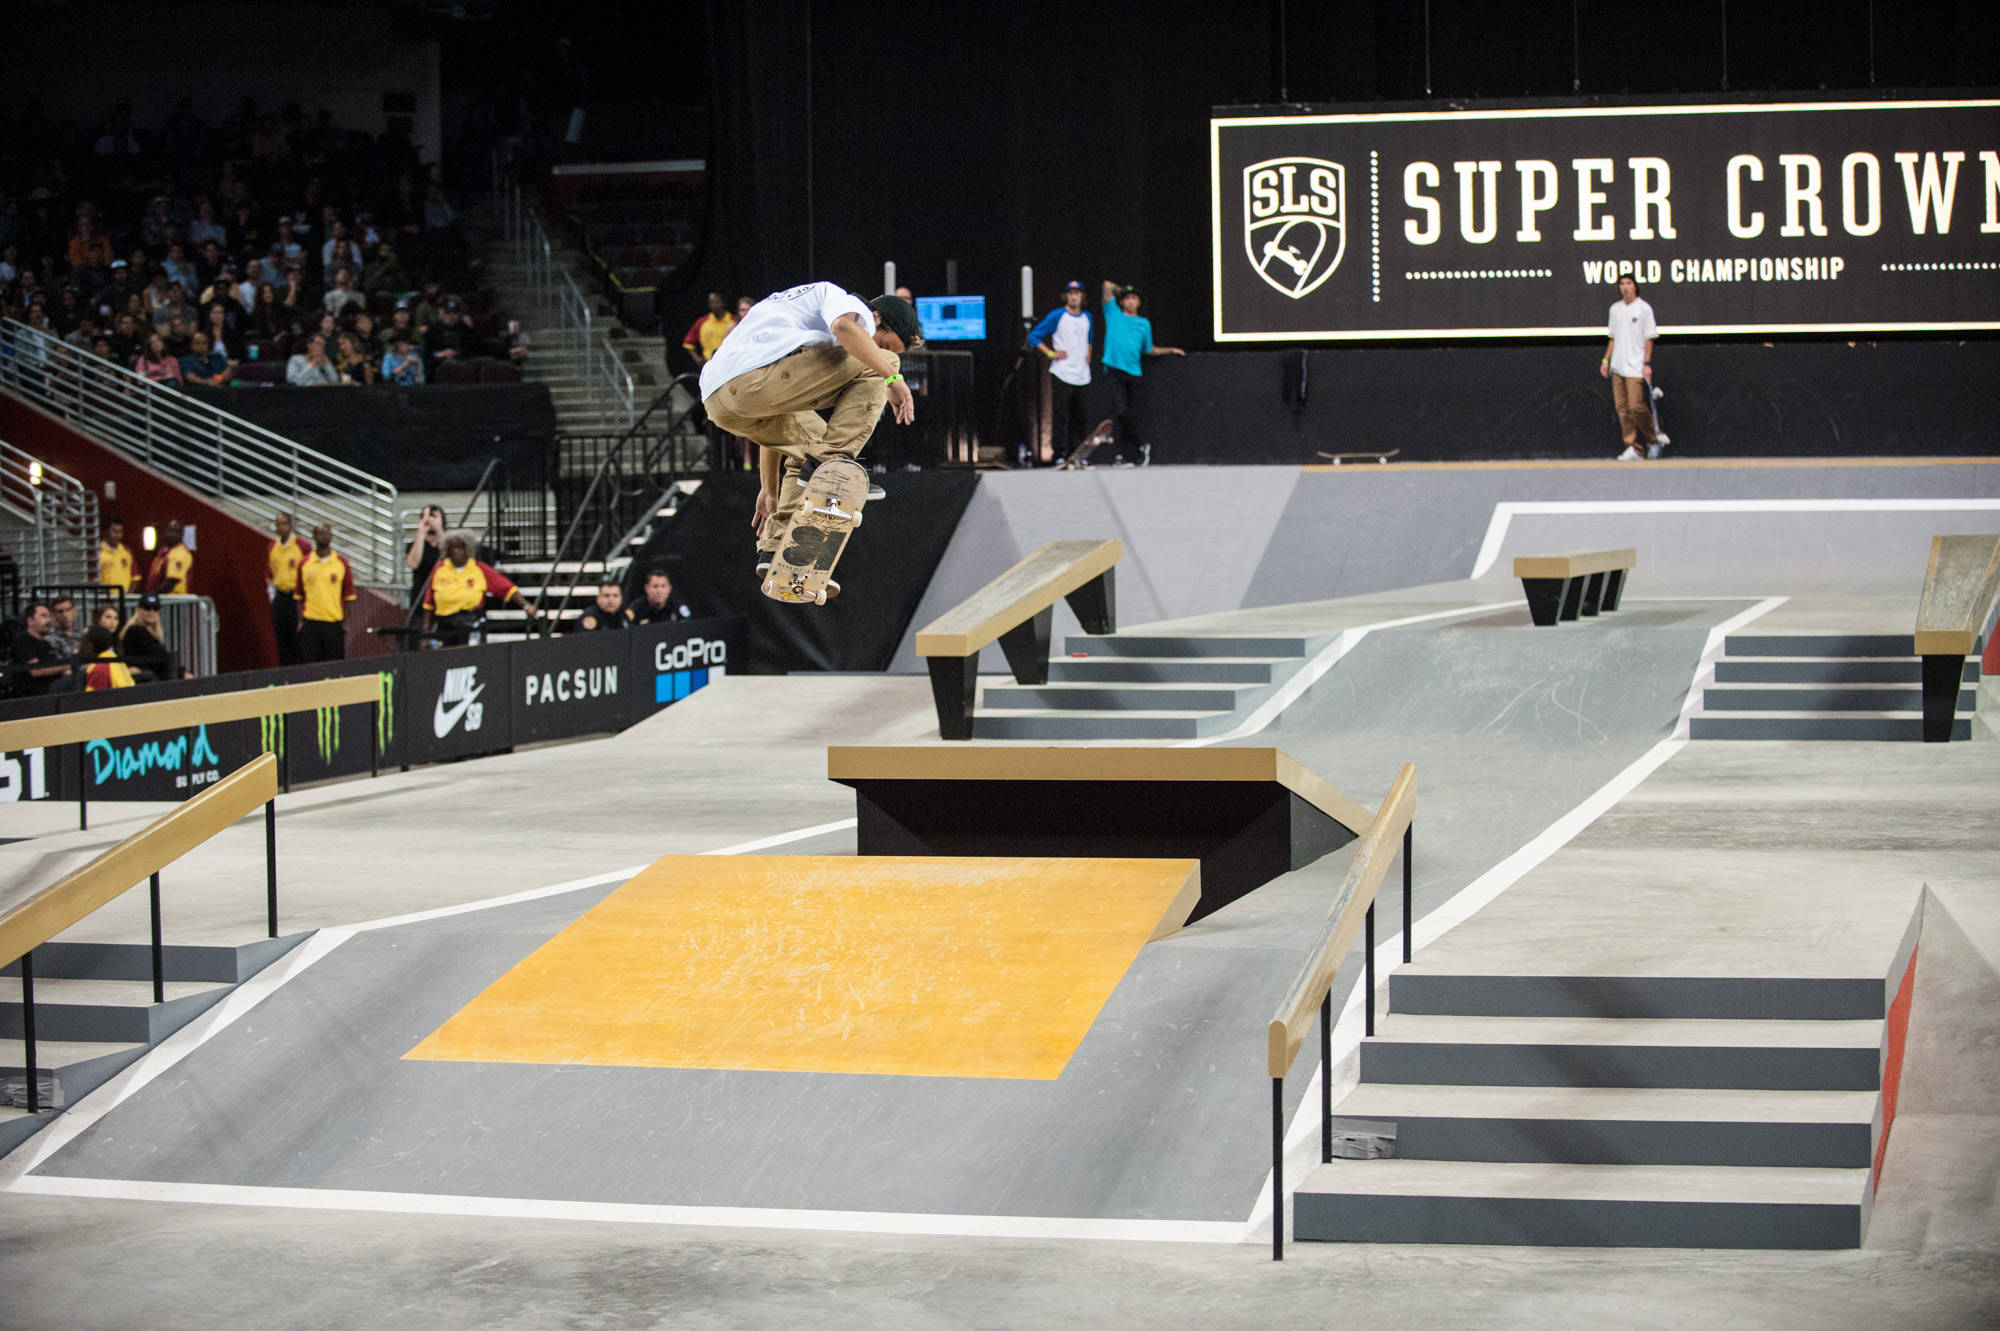 SHANE AND LACEY, STREET LEAGUE CHAMPS -- Gallery: SLS Super Crown in Los Angeles